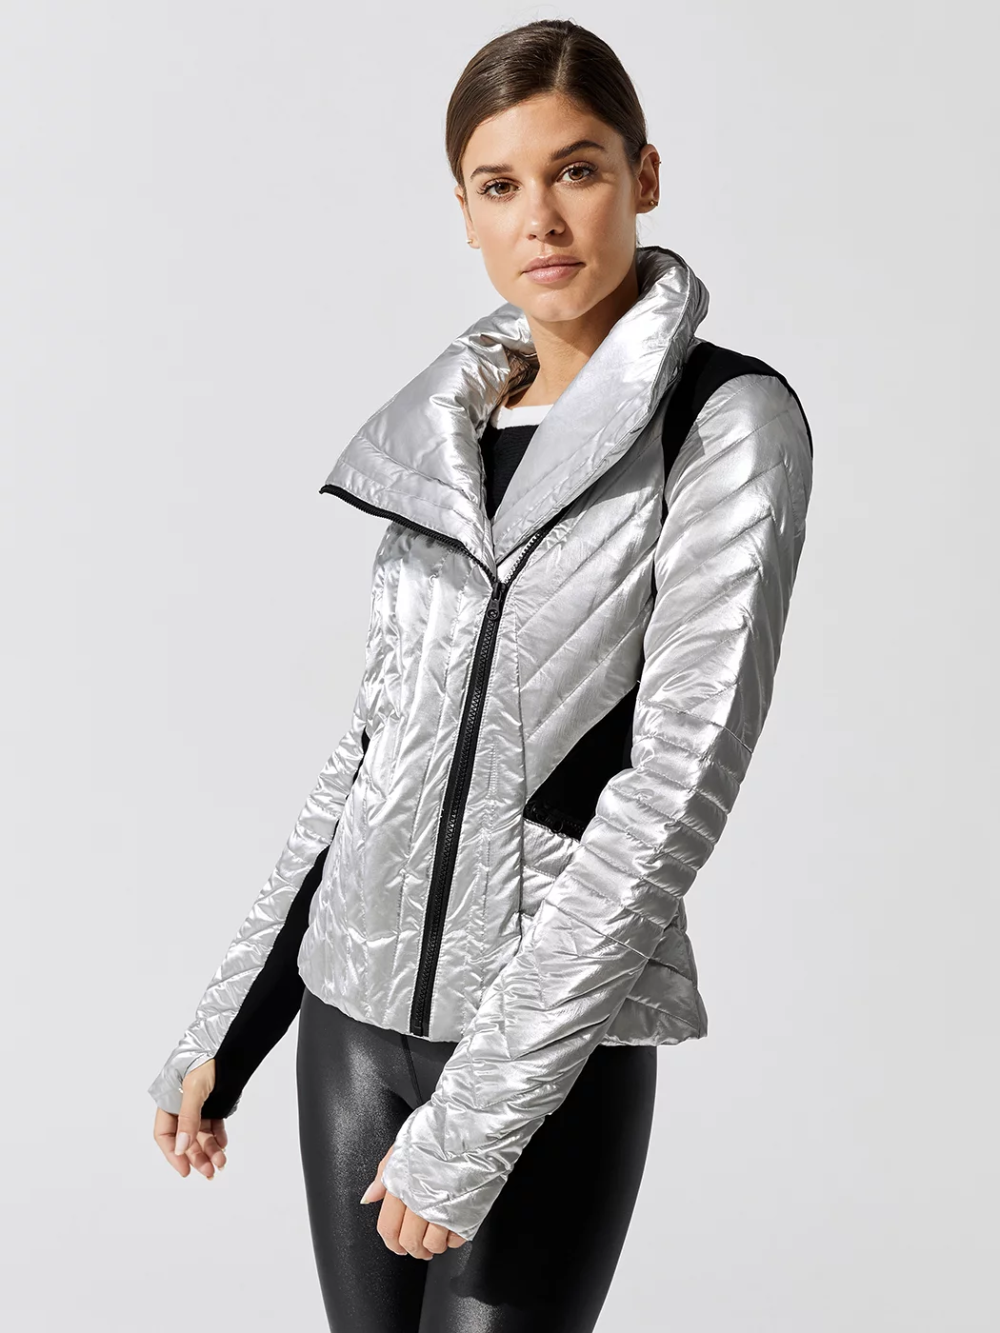 Super Hero Motion Panel Puffer In Silver By Blanc Noir From Carbon38 Puffer Jackets For Women Carbon 38 [ 1333 x 1000 Pixel ]